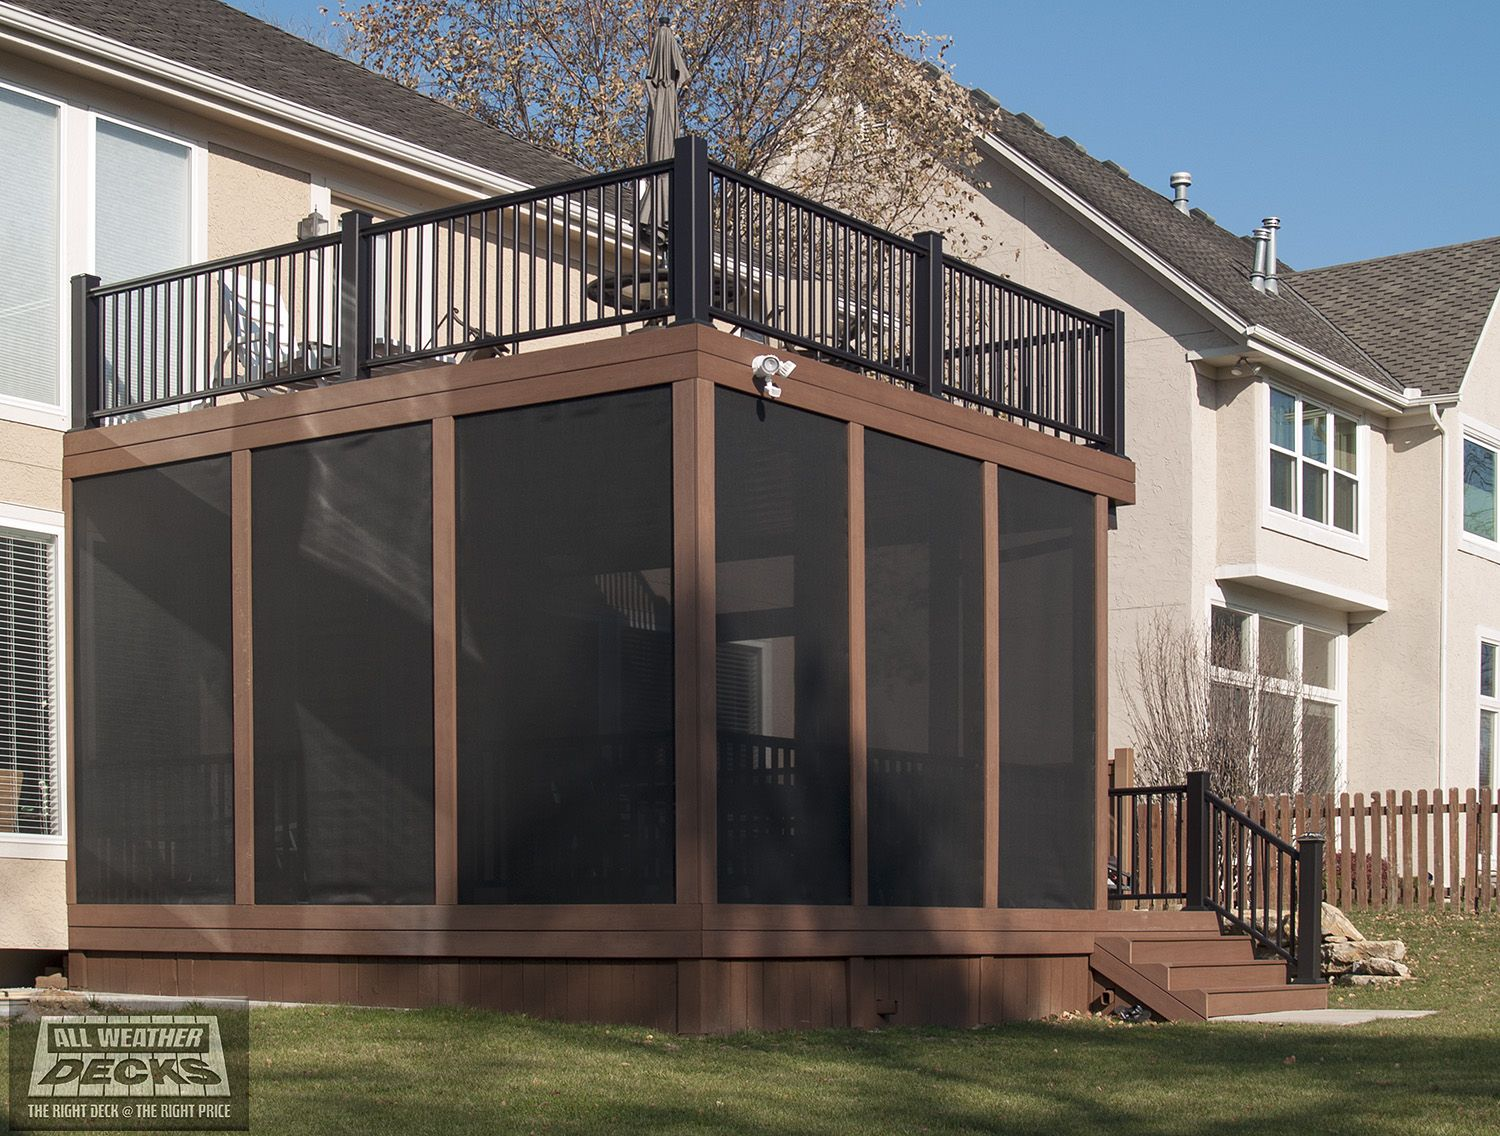 Pictures Of Under Deck Ceiling Guttering Systems By All Weather Decks Patio Under Decks Under Decks Screened In Patio